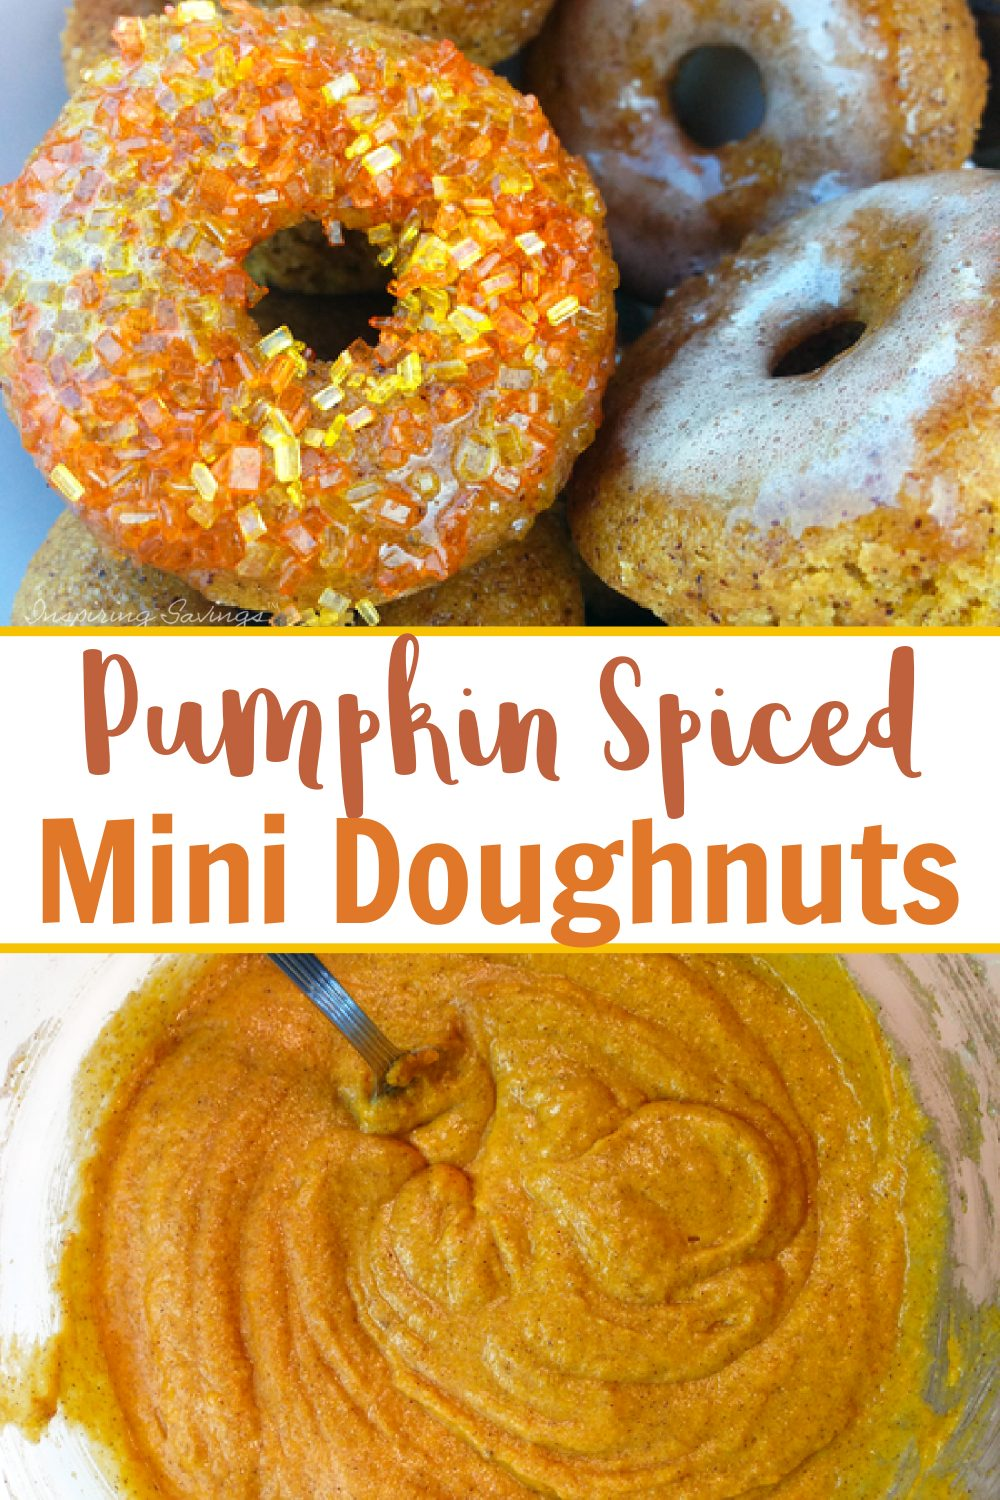 Pumpkin Spiced mini doughnuts